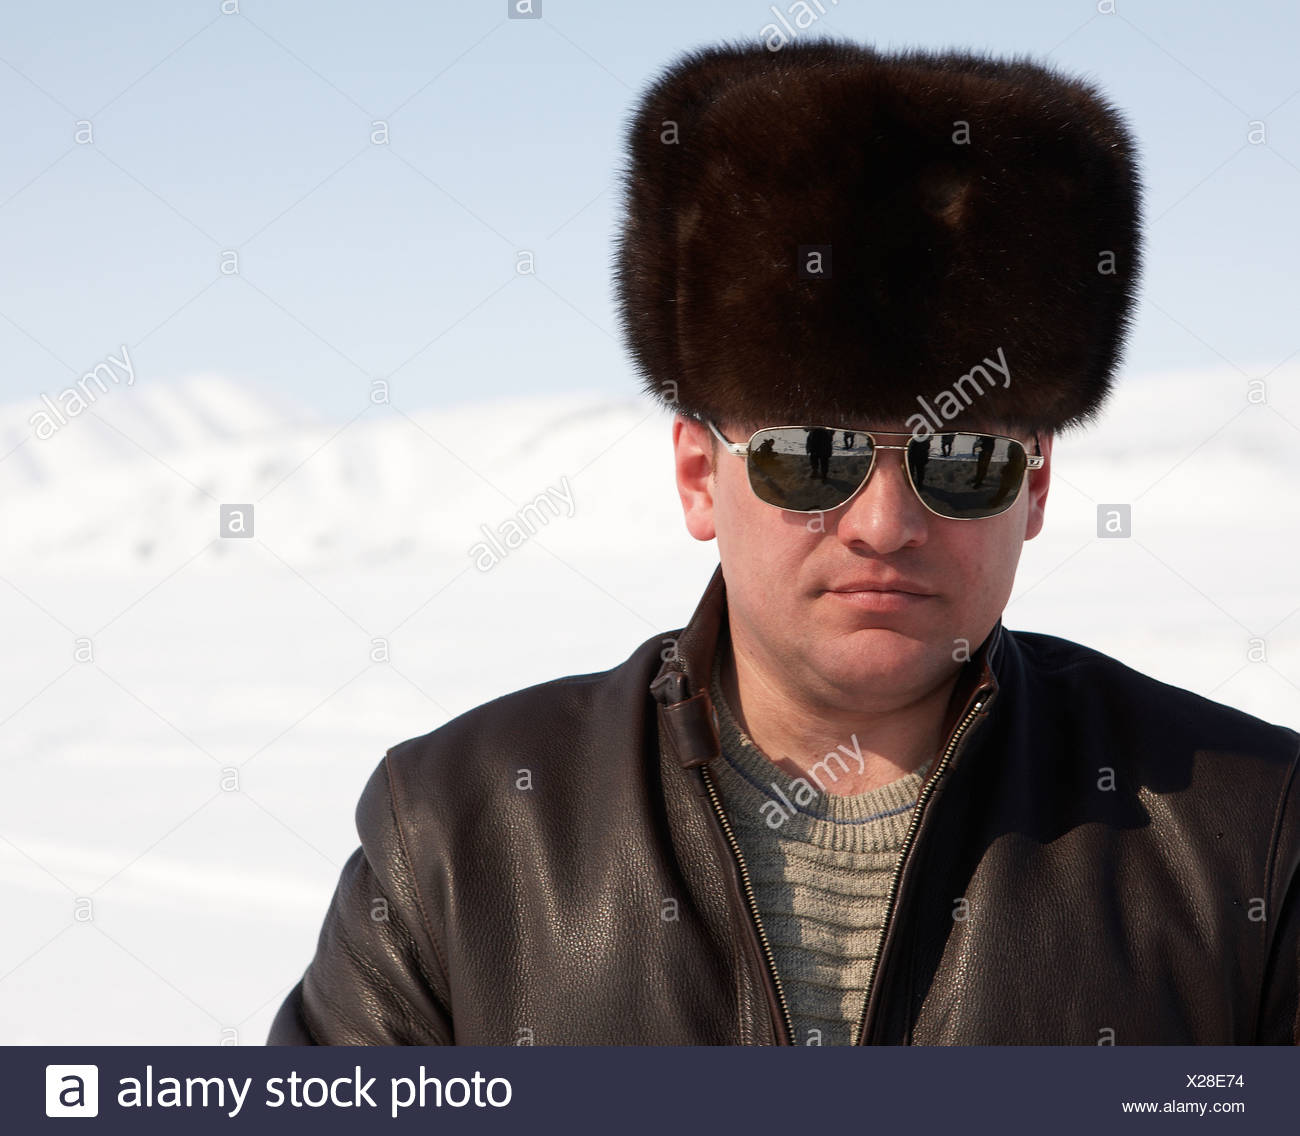 6d182ca114a Russian Hat Stock Photos   Russian Hat Stock Images - Alamy